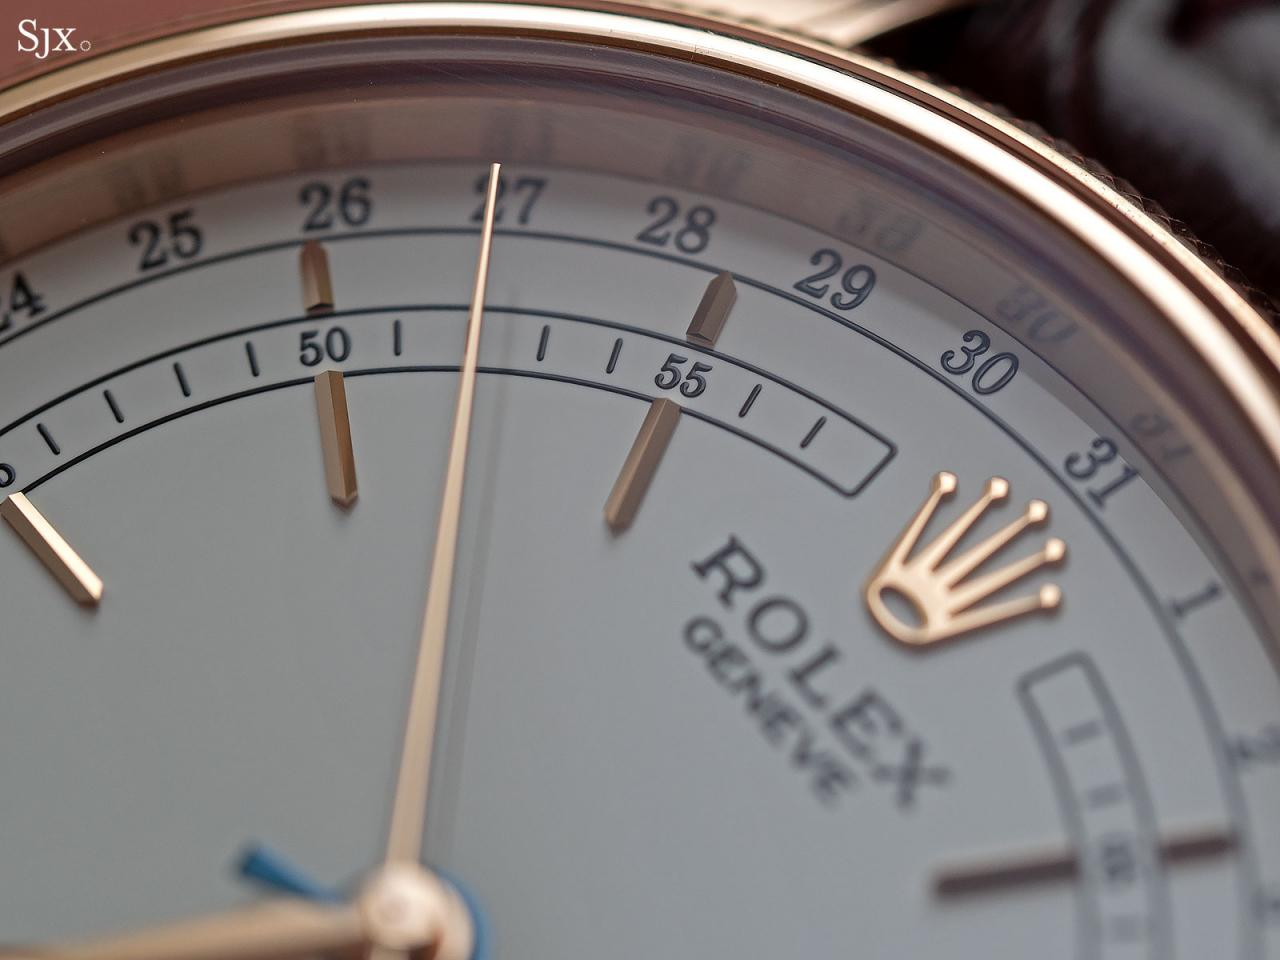 Rolex Cellini Moonphase 50535 review 4